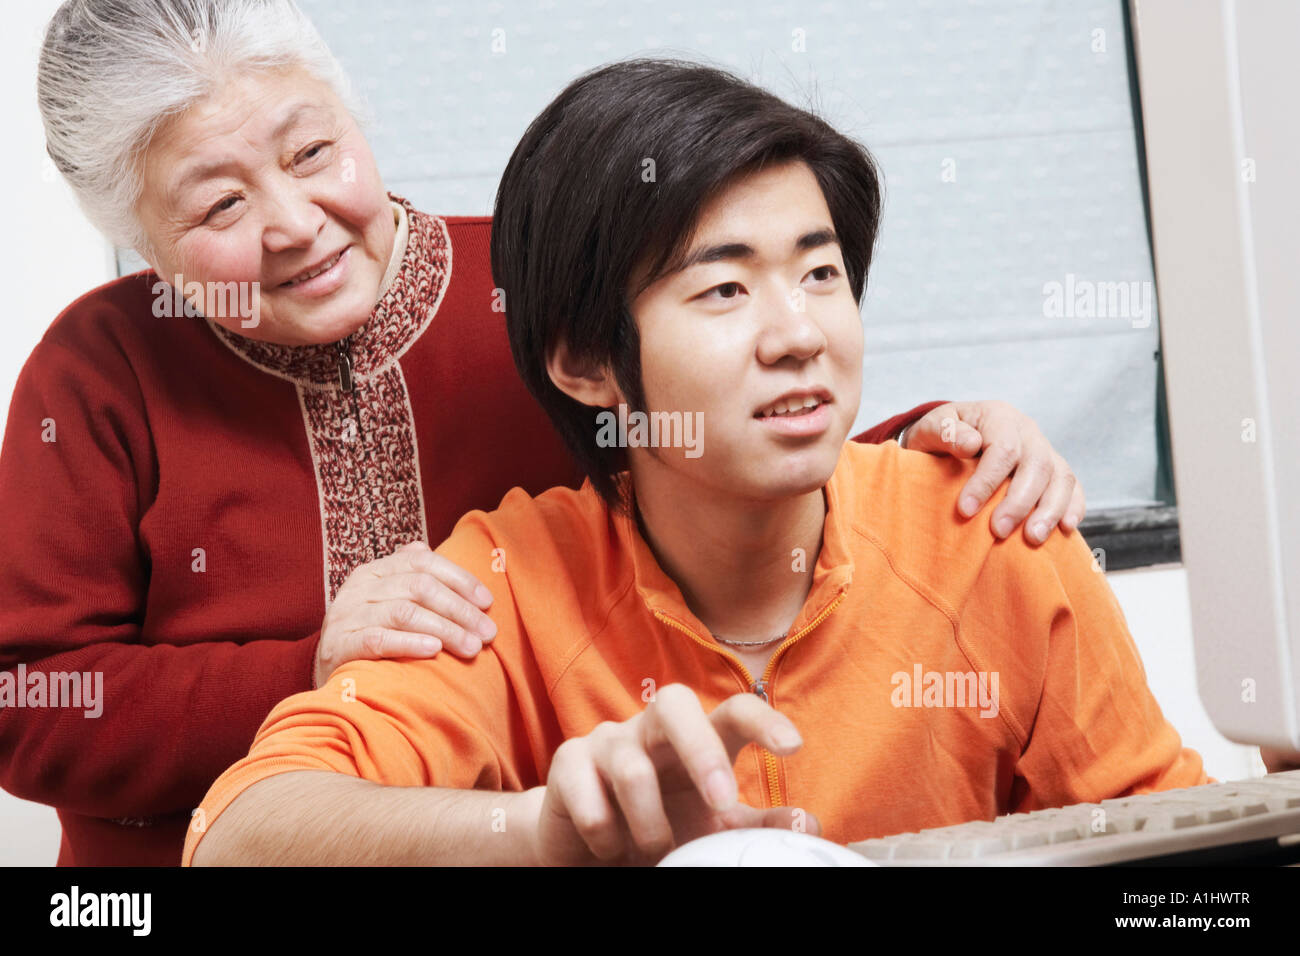 Close-up of a grandson using a computer with his grandmother standing behind him - Stock Image